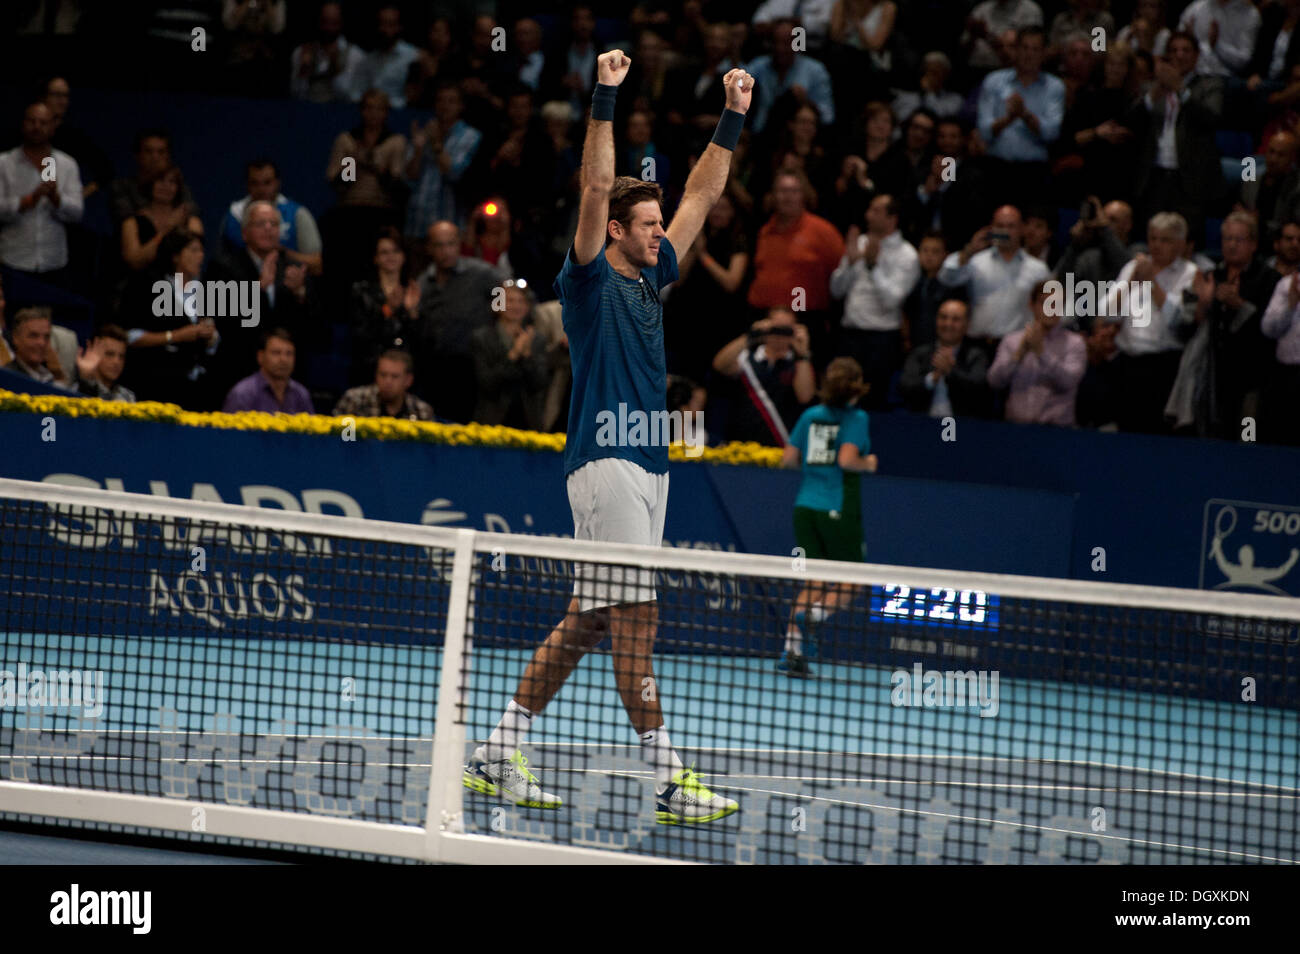 Basel, Switzerland. 27th Oct, 2013. J.M. Del Potro (ARG) raises his hands after winning the final of the Swiss Indoors at St. Jakobshalle on Sunday. Photo: Miroslav Dakov/ Alamy Live News - Stock Image